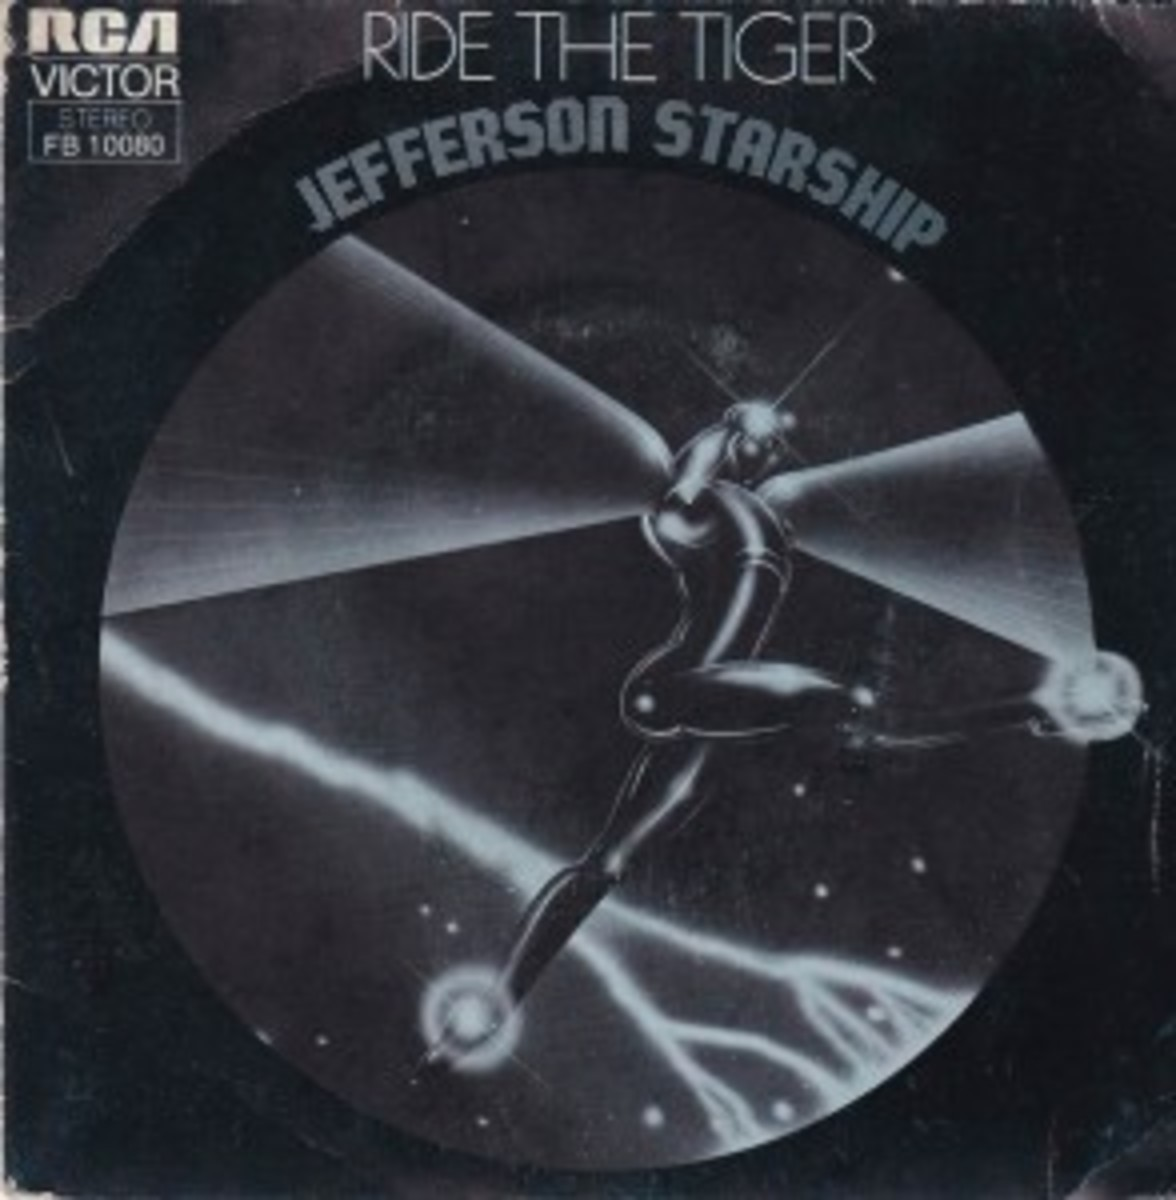 ride-the-tiger